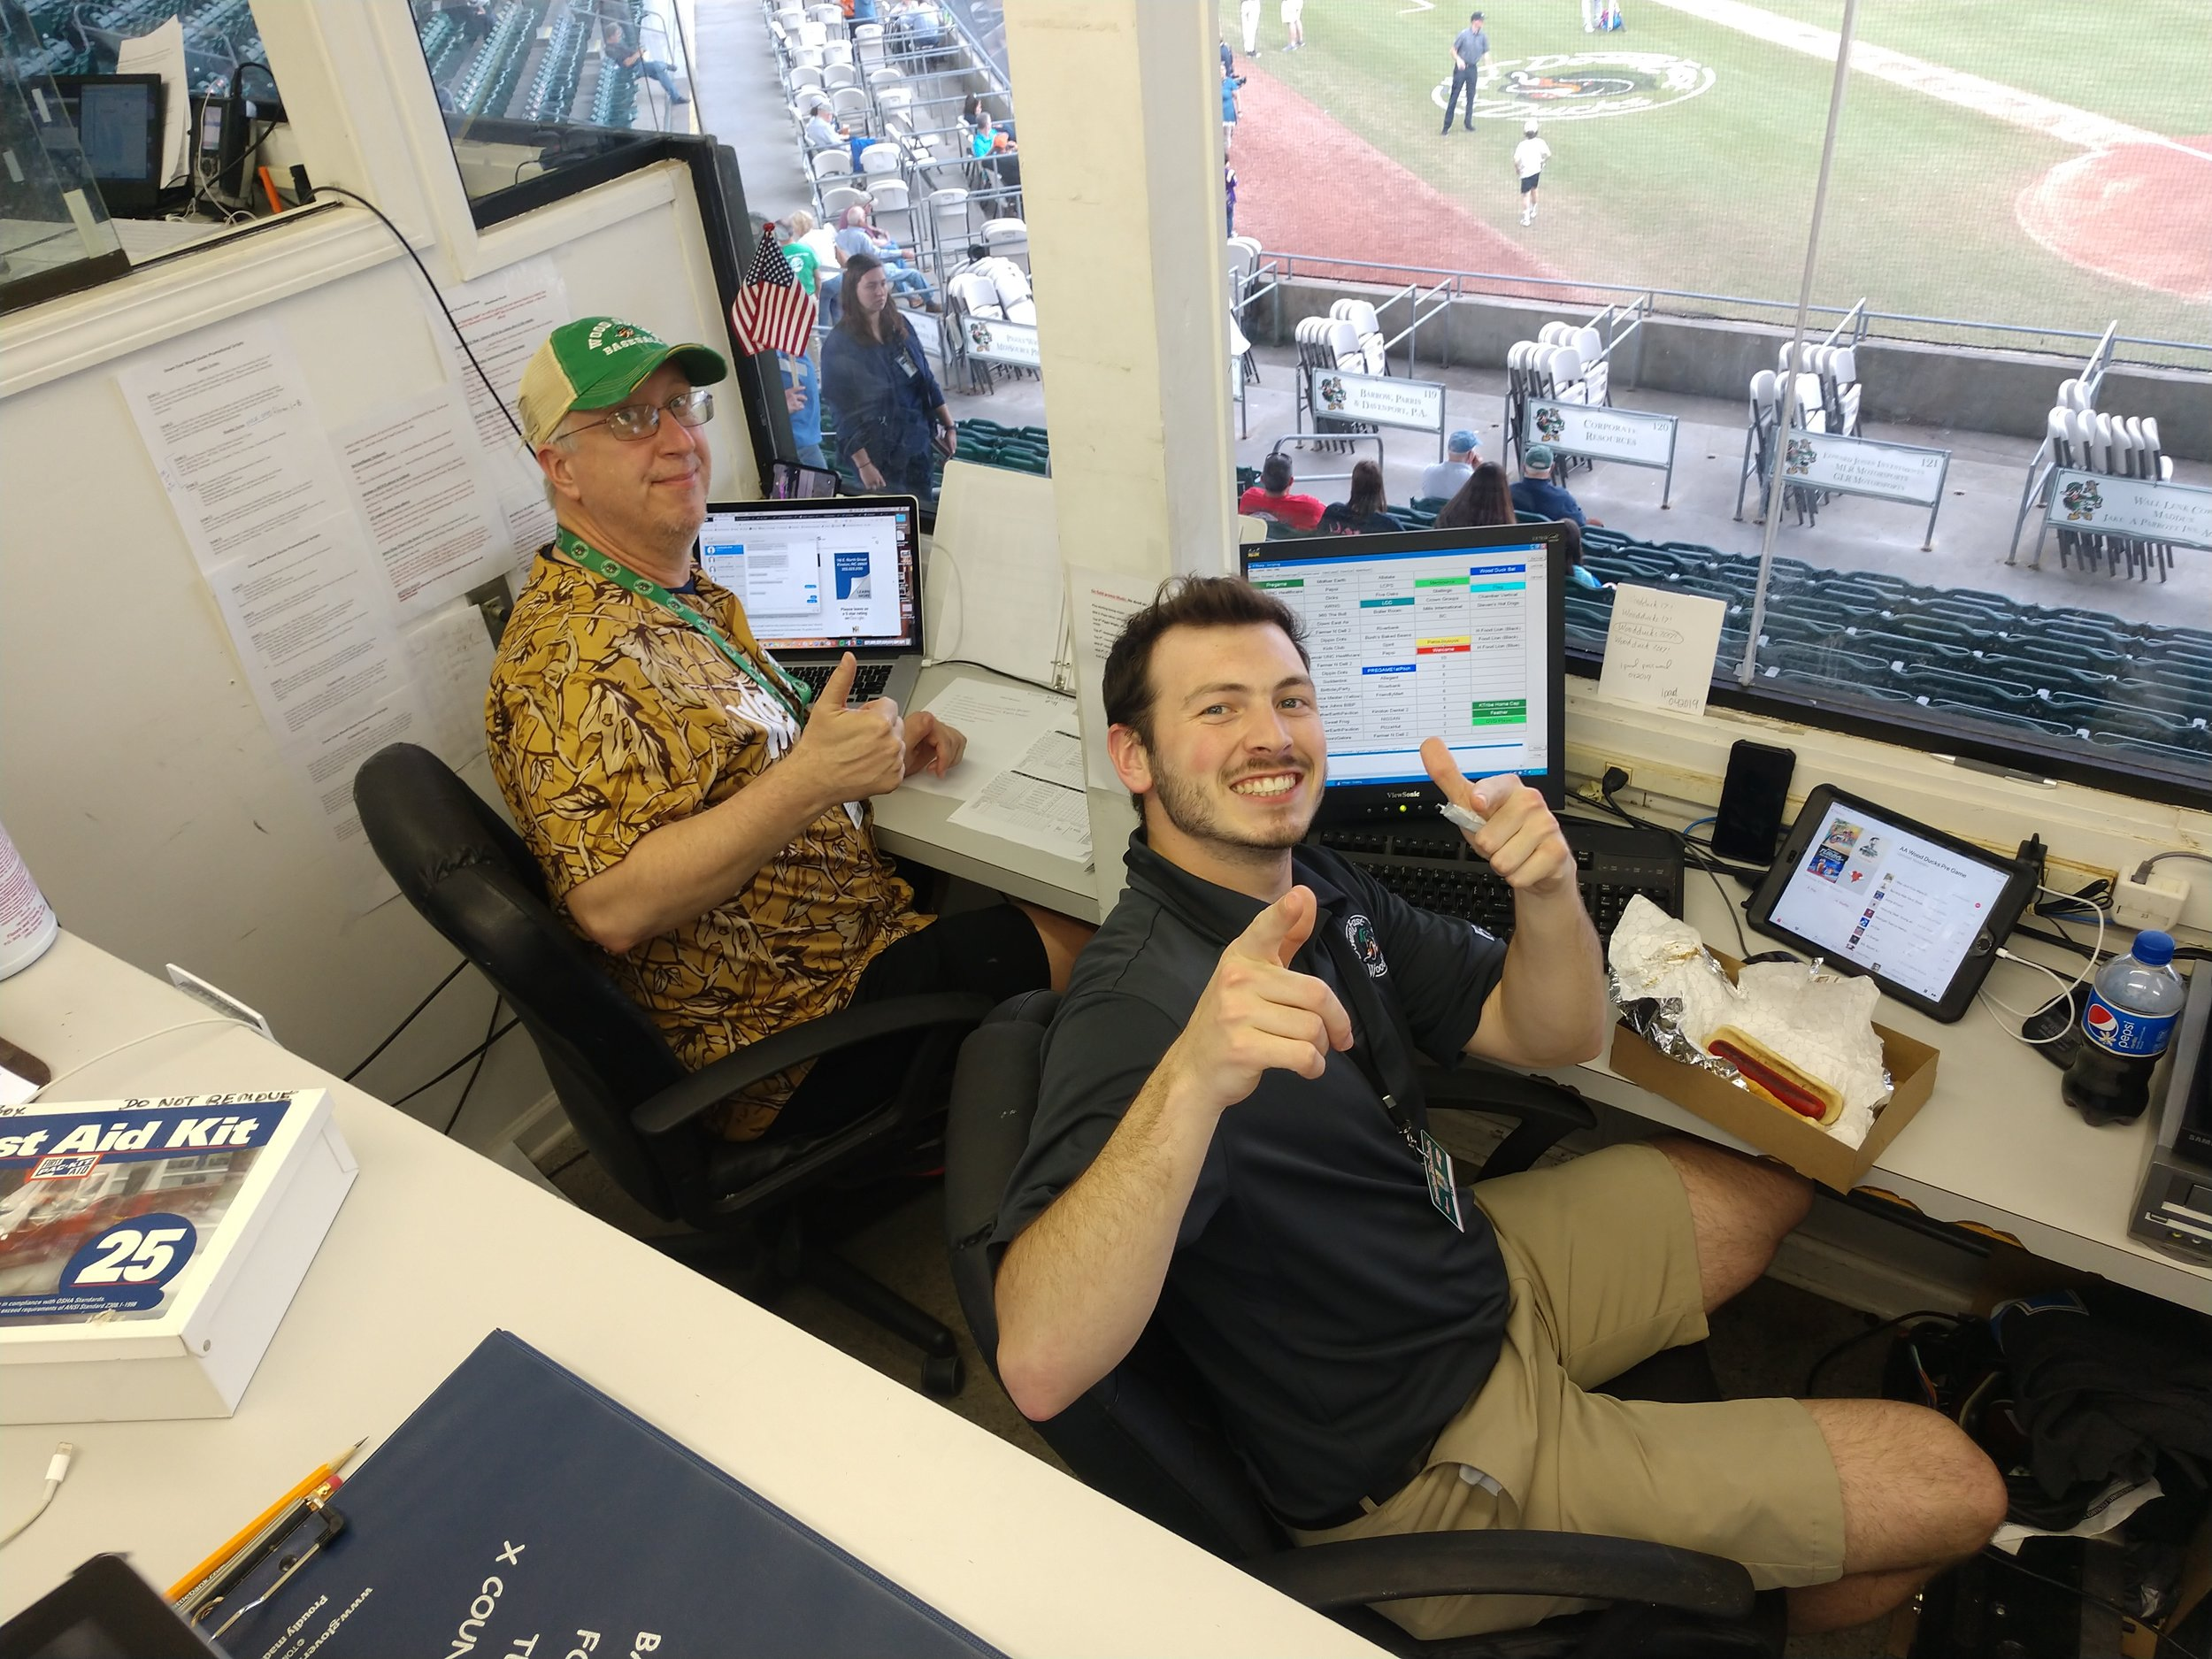 The calm before the storm as Wood Ducks' video board operator Sam Lee tries to keep Bryan's spirits high. Photo by Junious Smith III / Neuse News